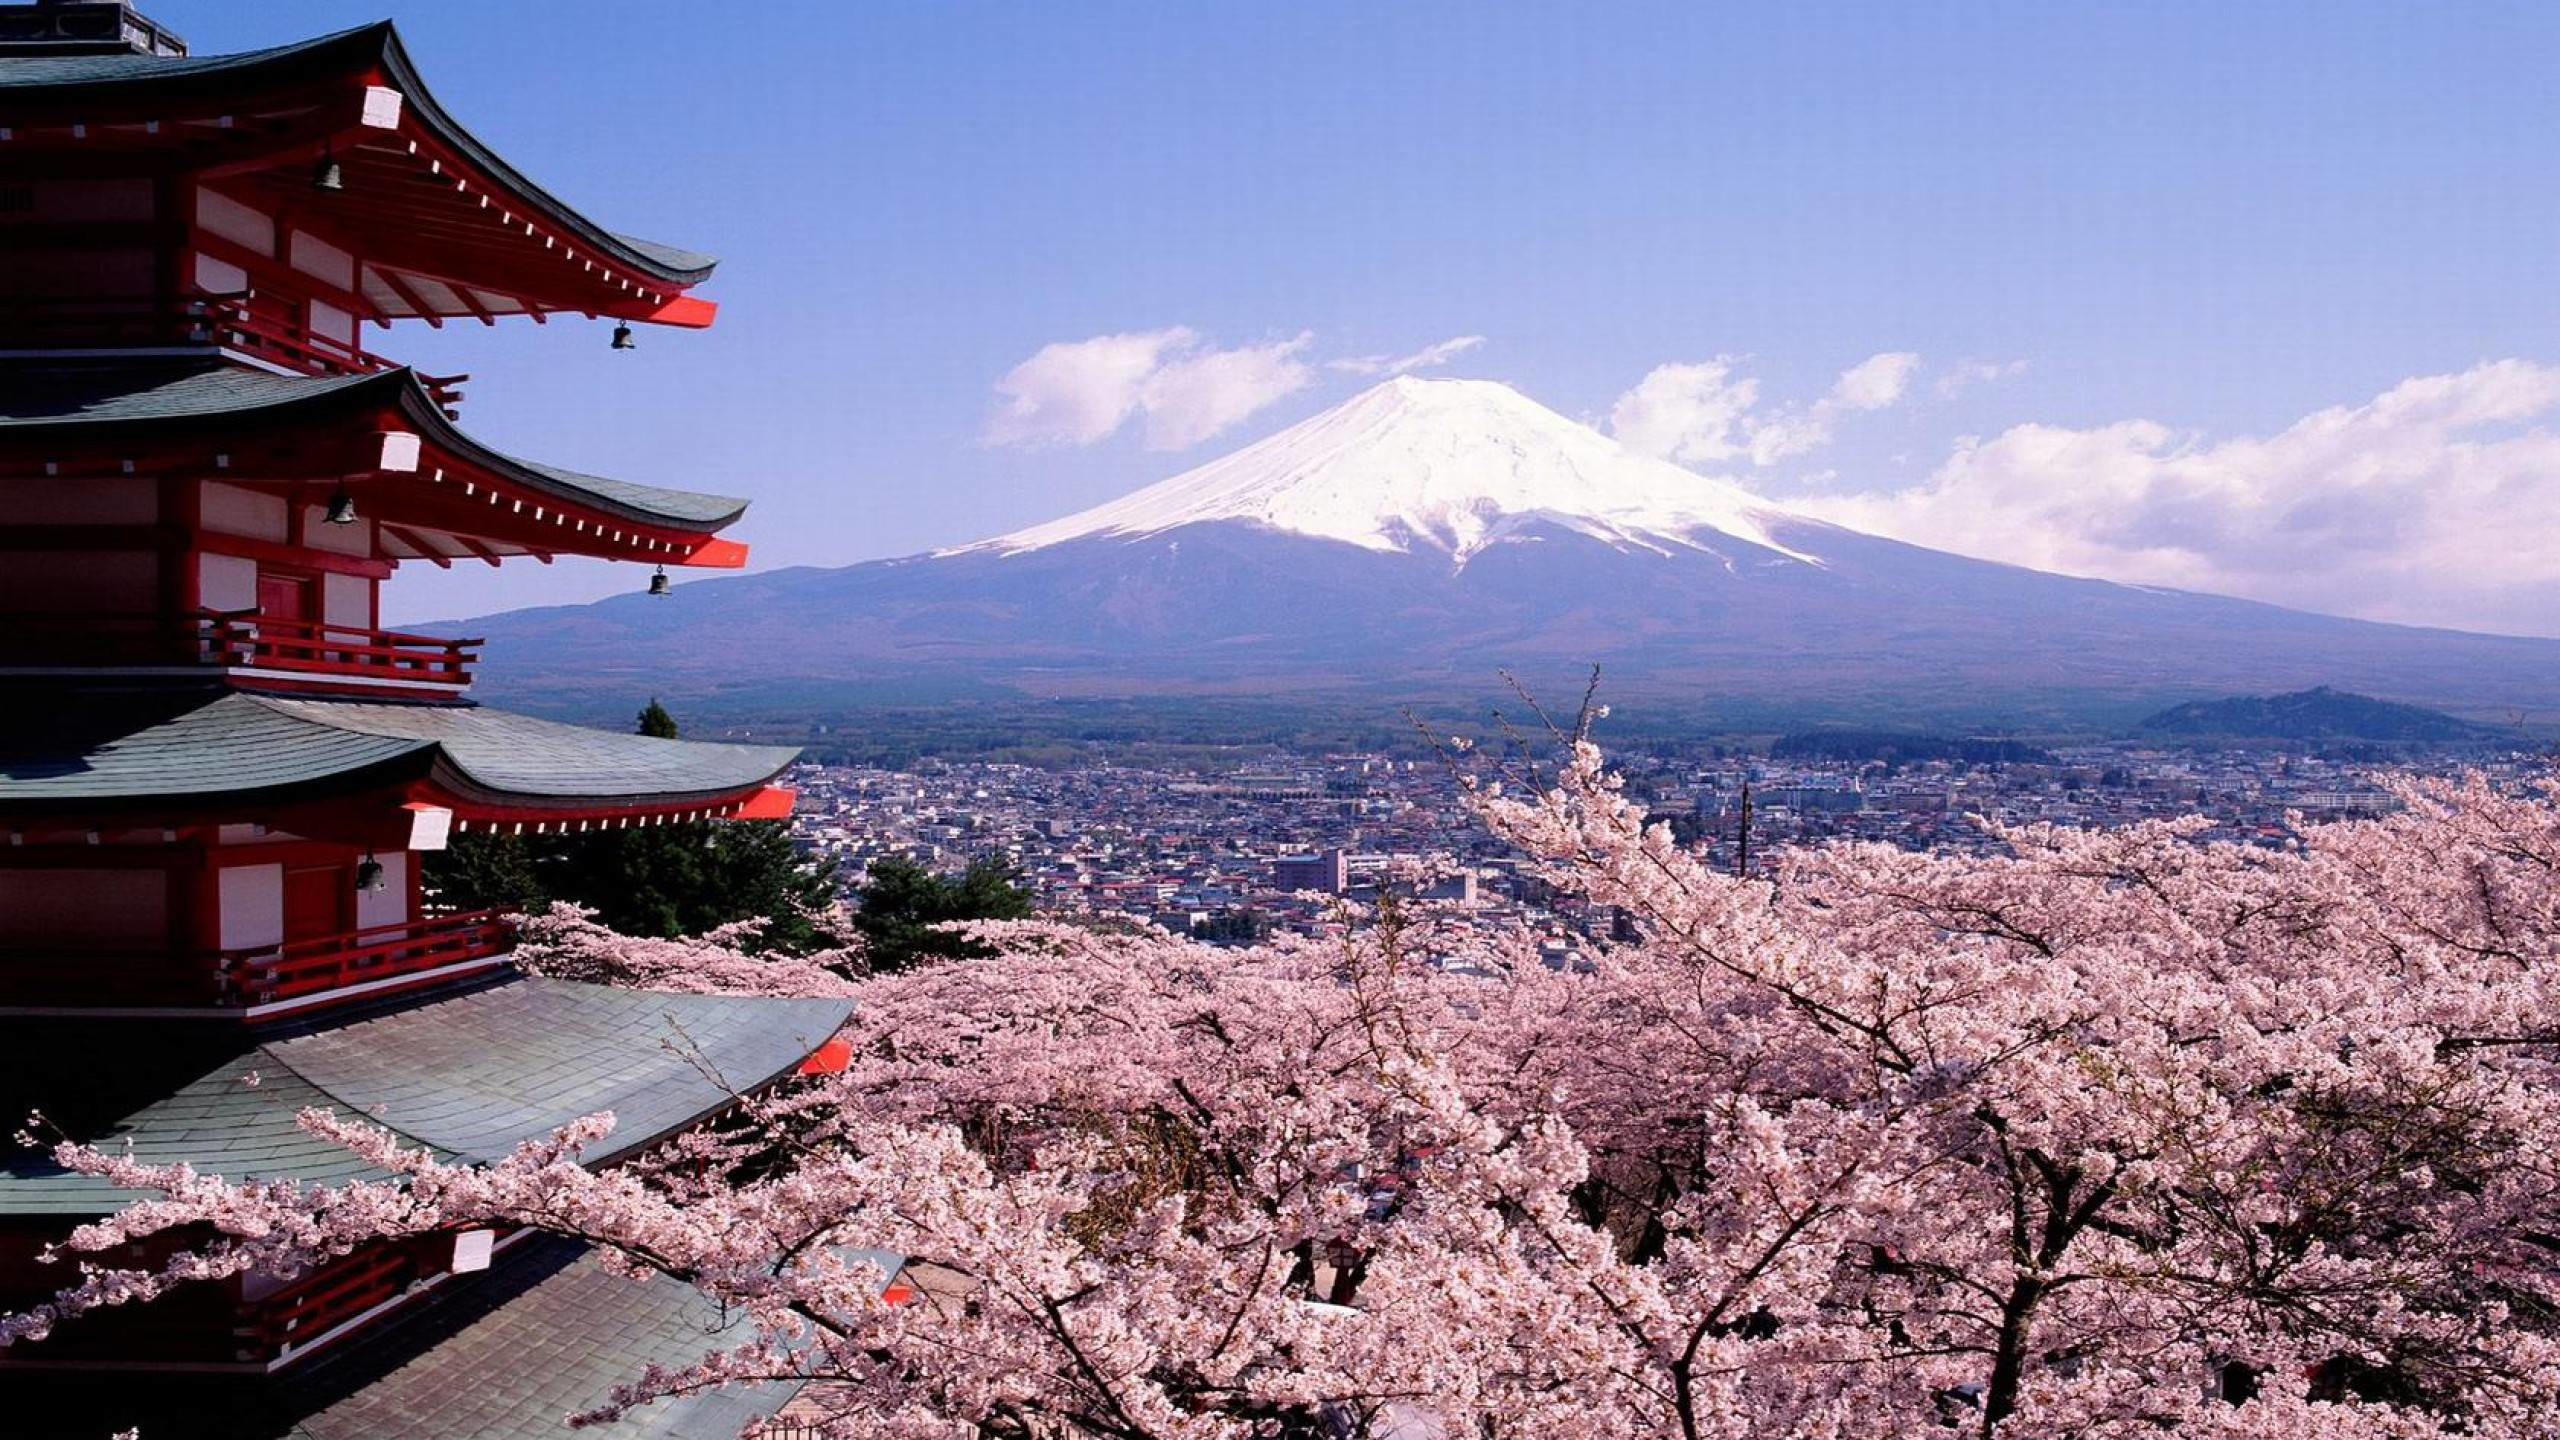 Mt Fuji Wallpaper 65 images 2560x1440